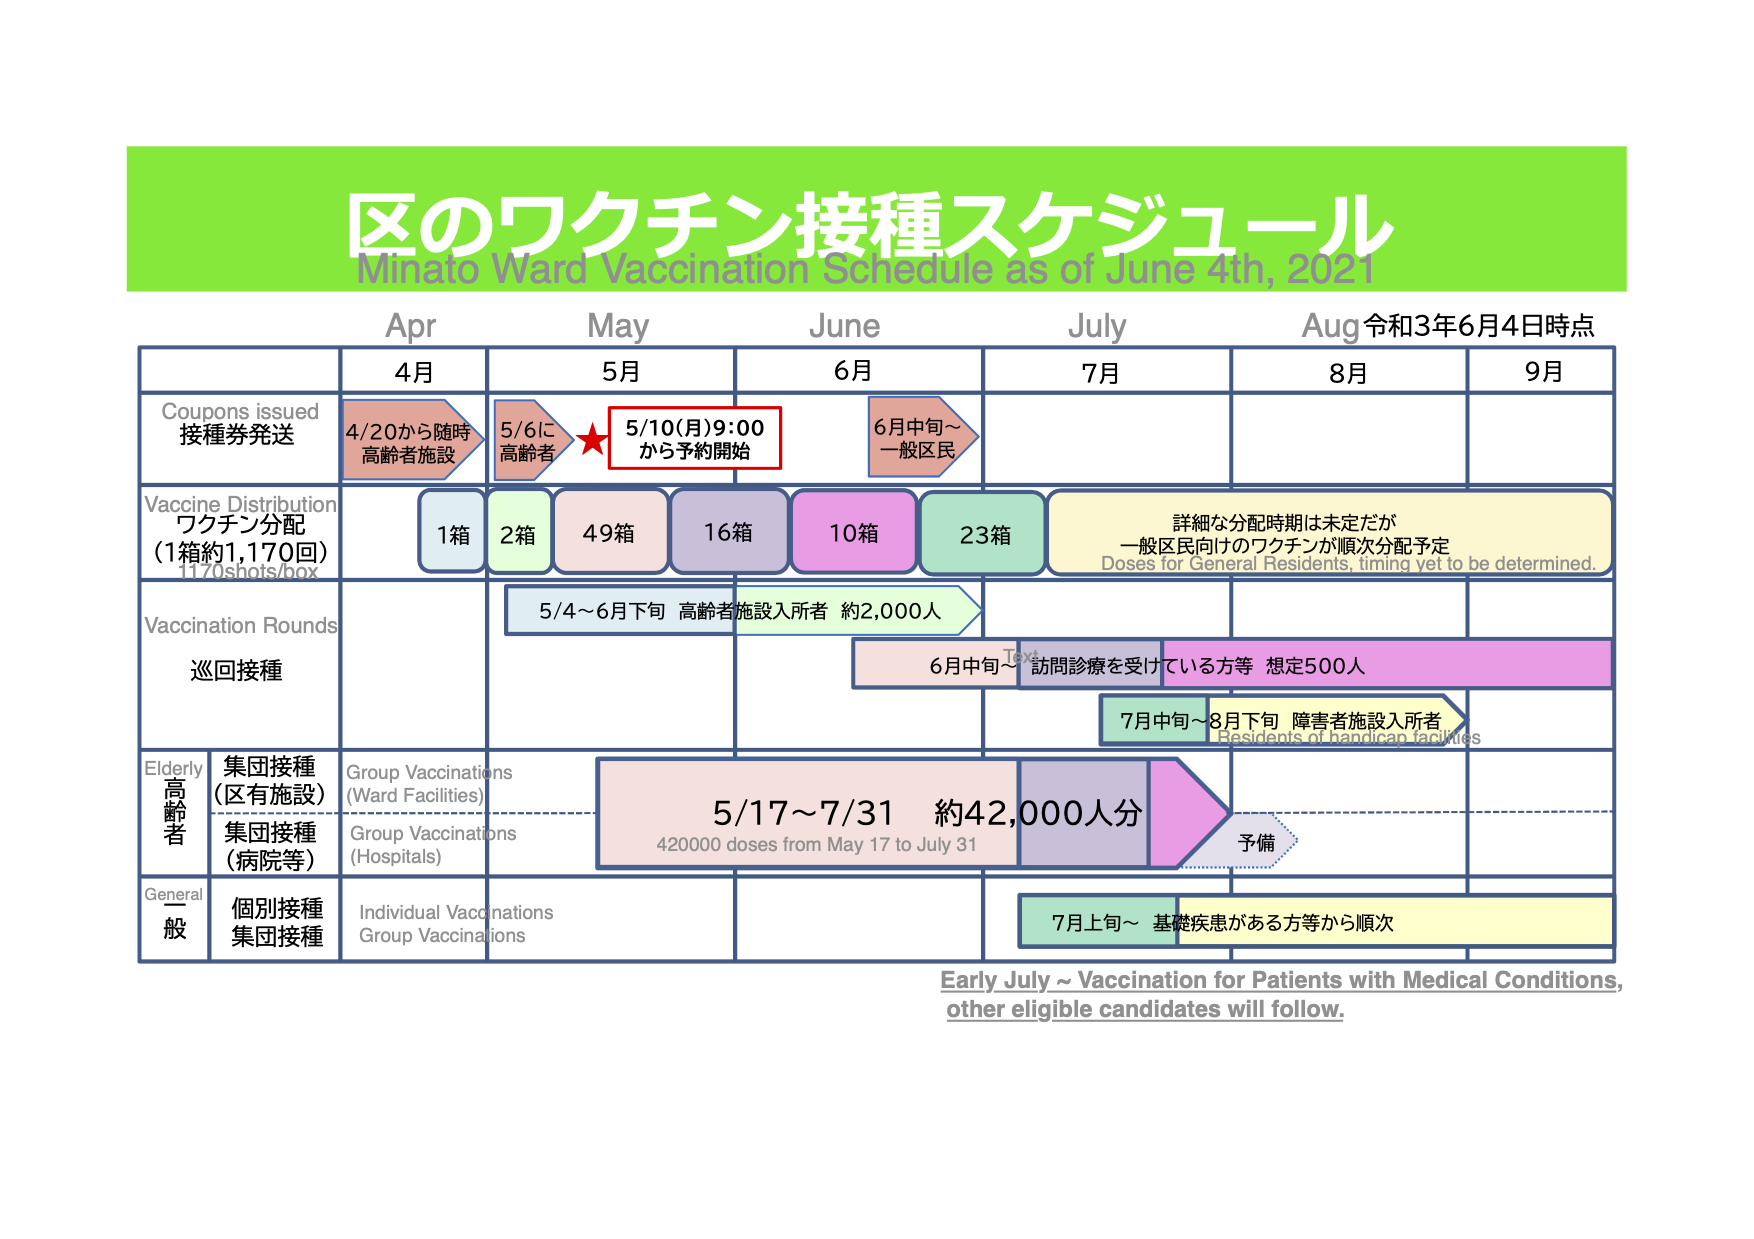 Vaccination for the General Public will start in early July. Priority will be given to people with medical conditions.   https://www.city.minato.tokyo.jp/wakuchintan/corona_wakuchin/documents/schedule6.pdf